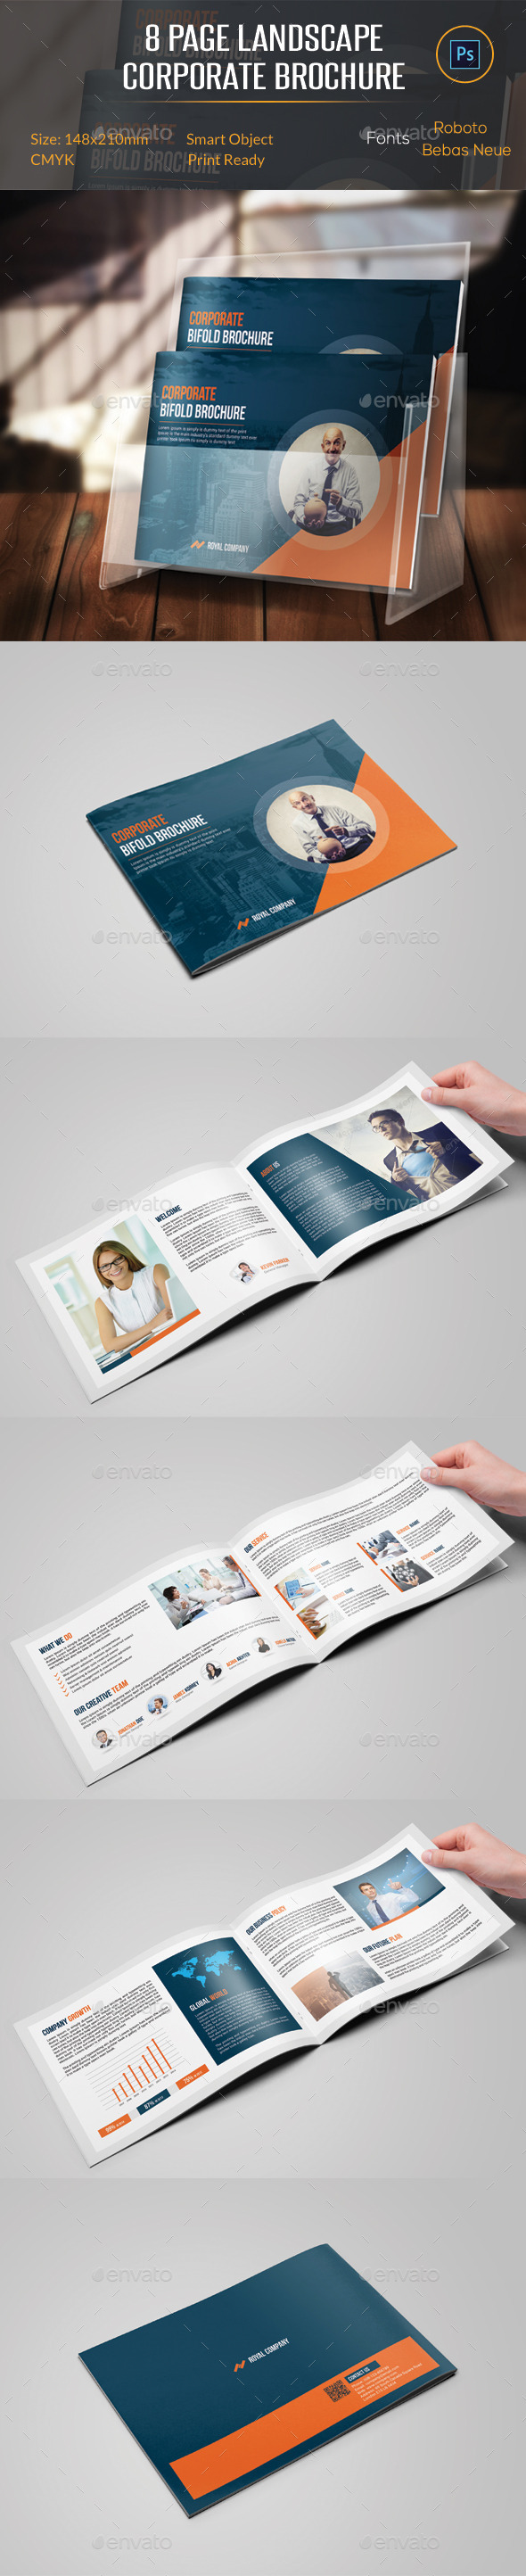 GraphicRiver 8 Pages Landscape Corporate Brochure 11306610